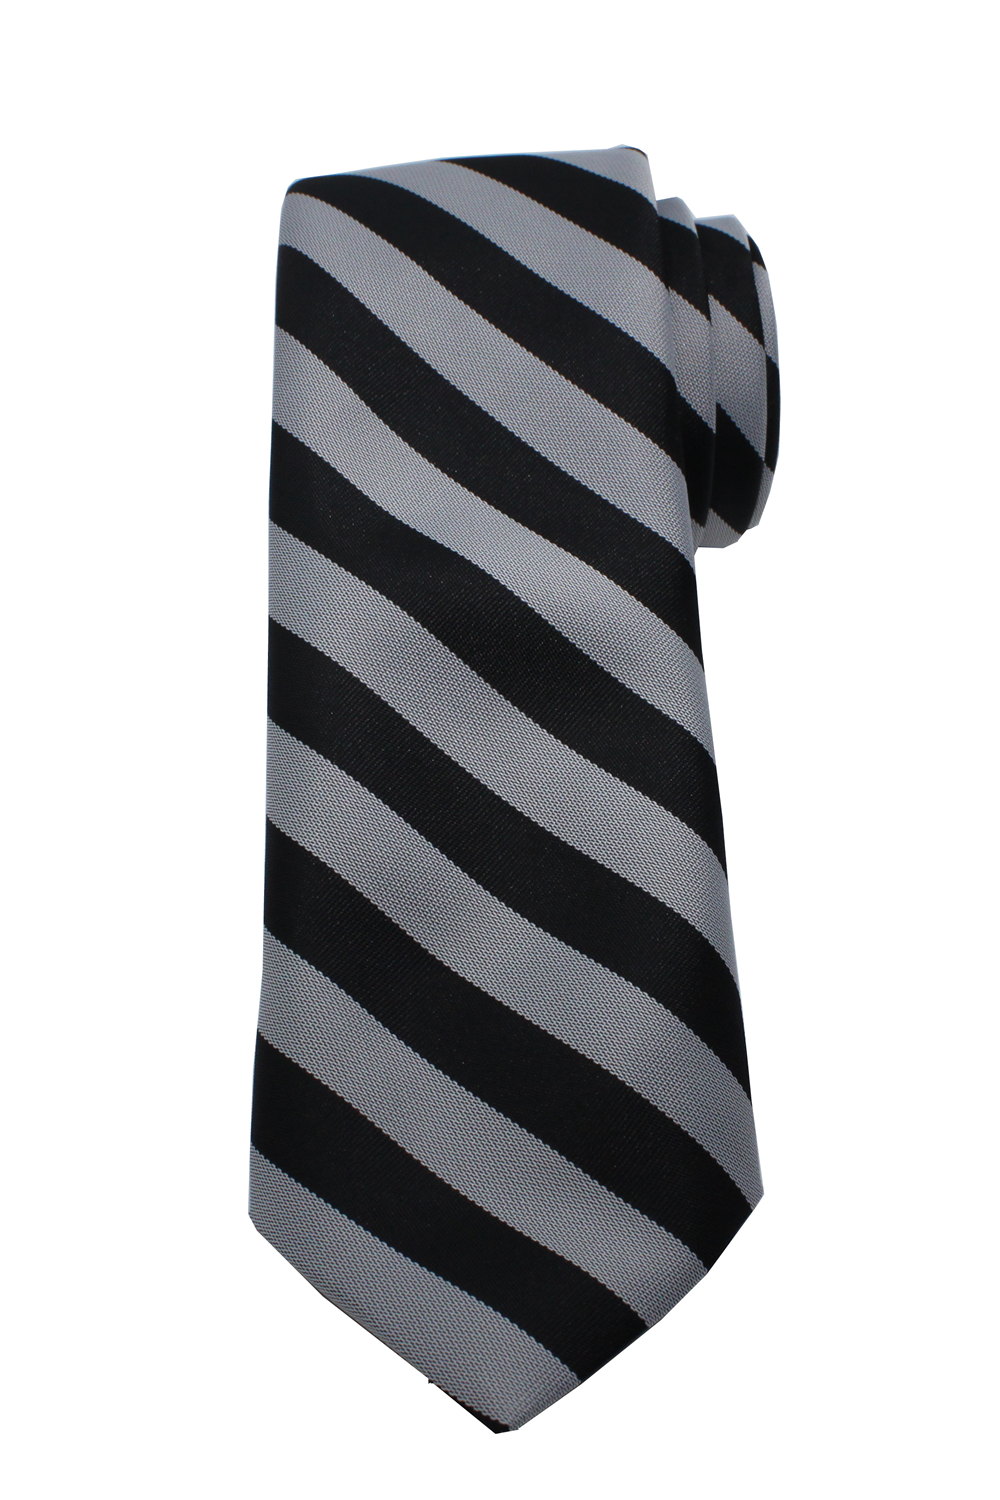 ASSG Boys Formal Tie